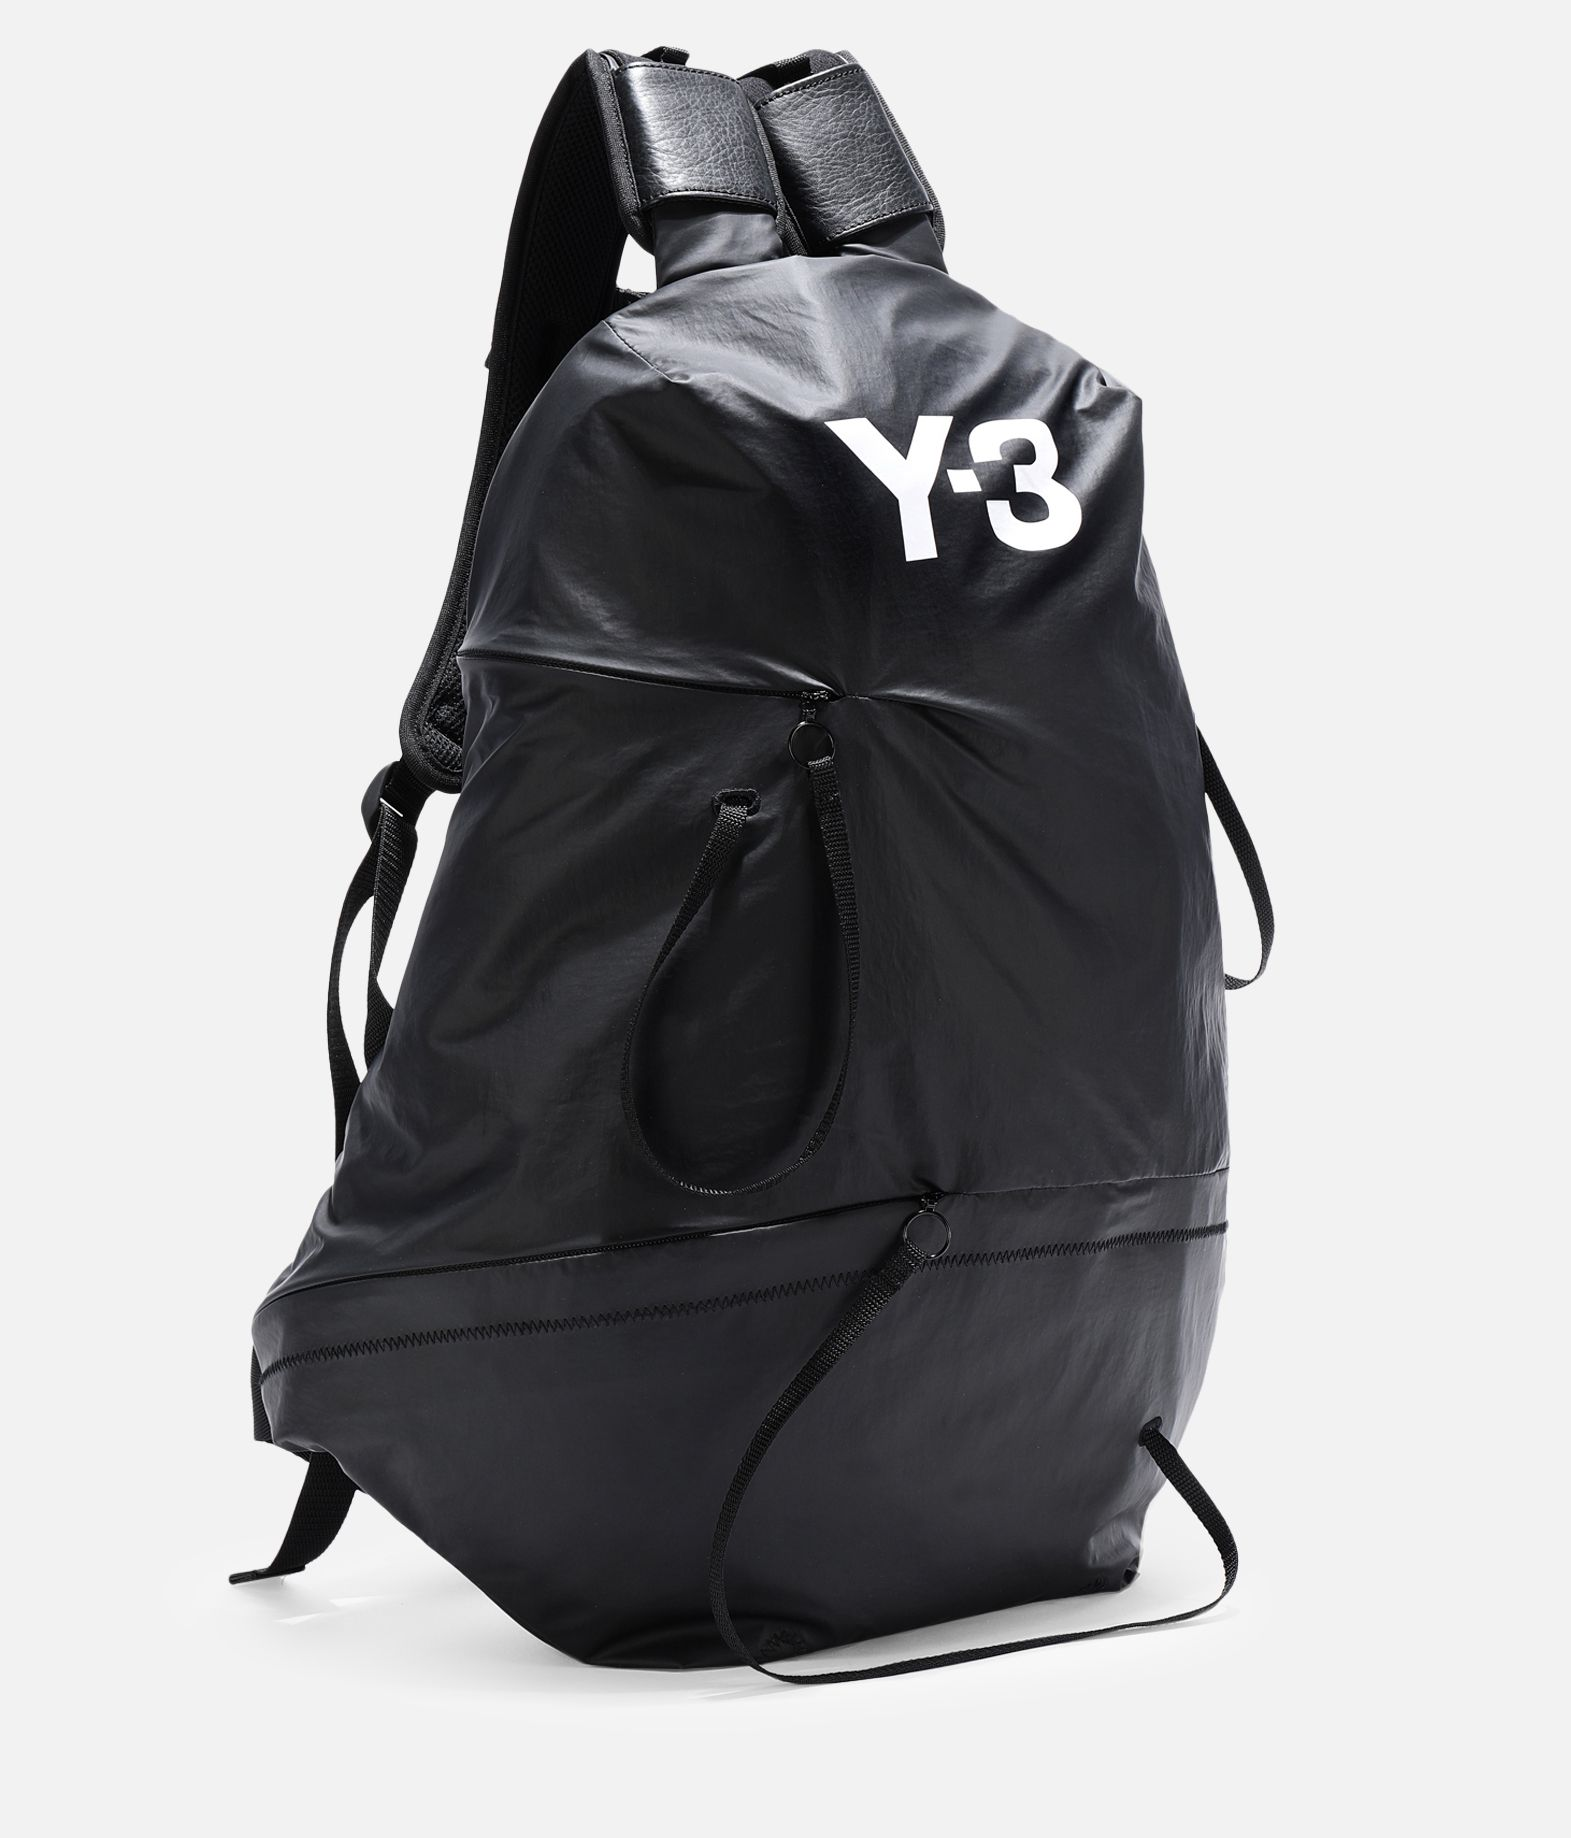 Y-3 Y-3 Bungee Backpack Backpack E r